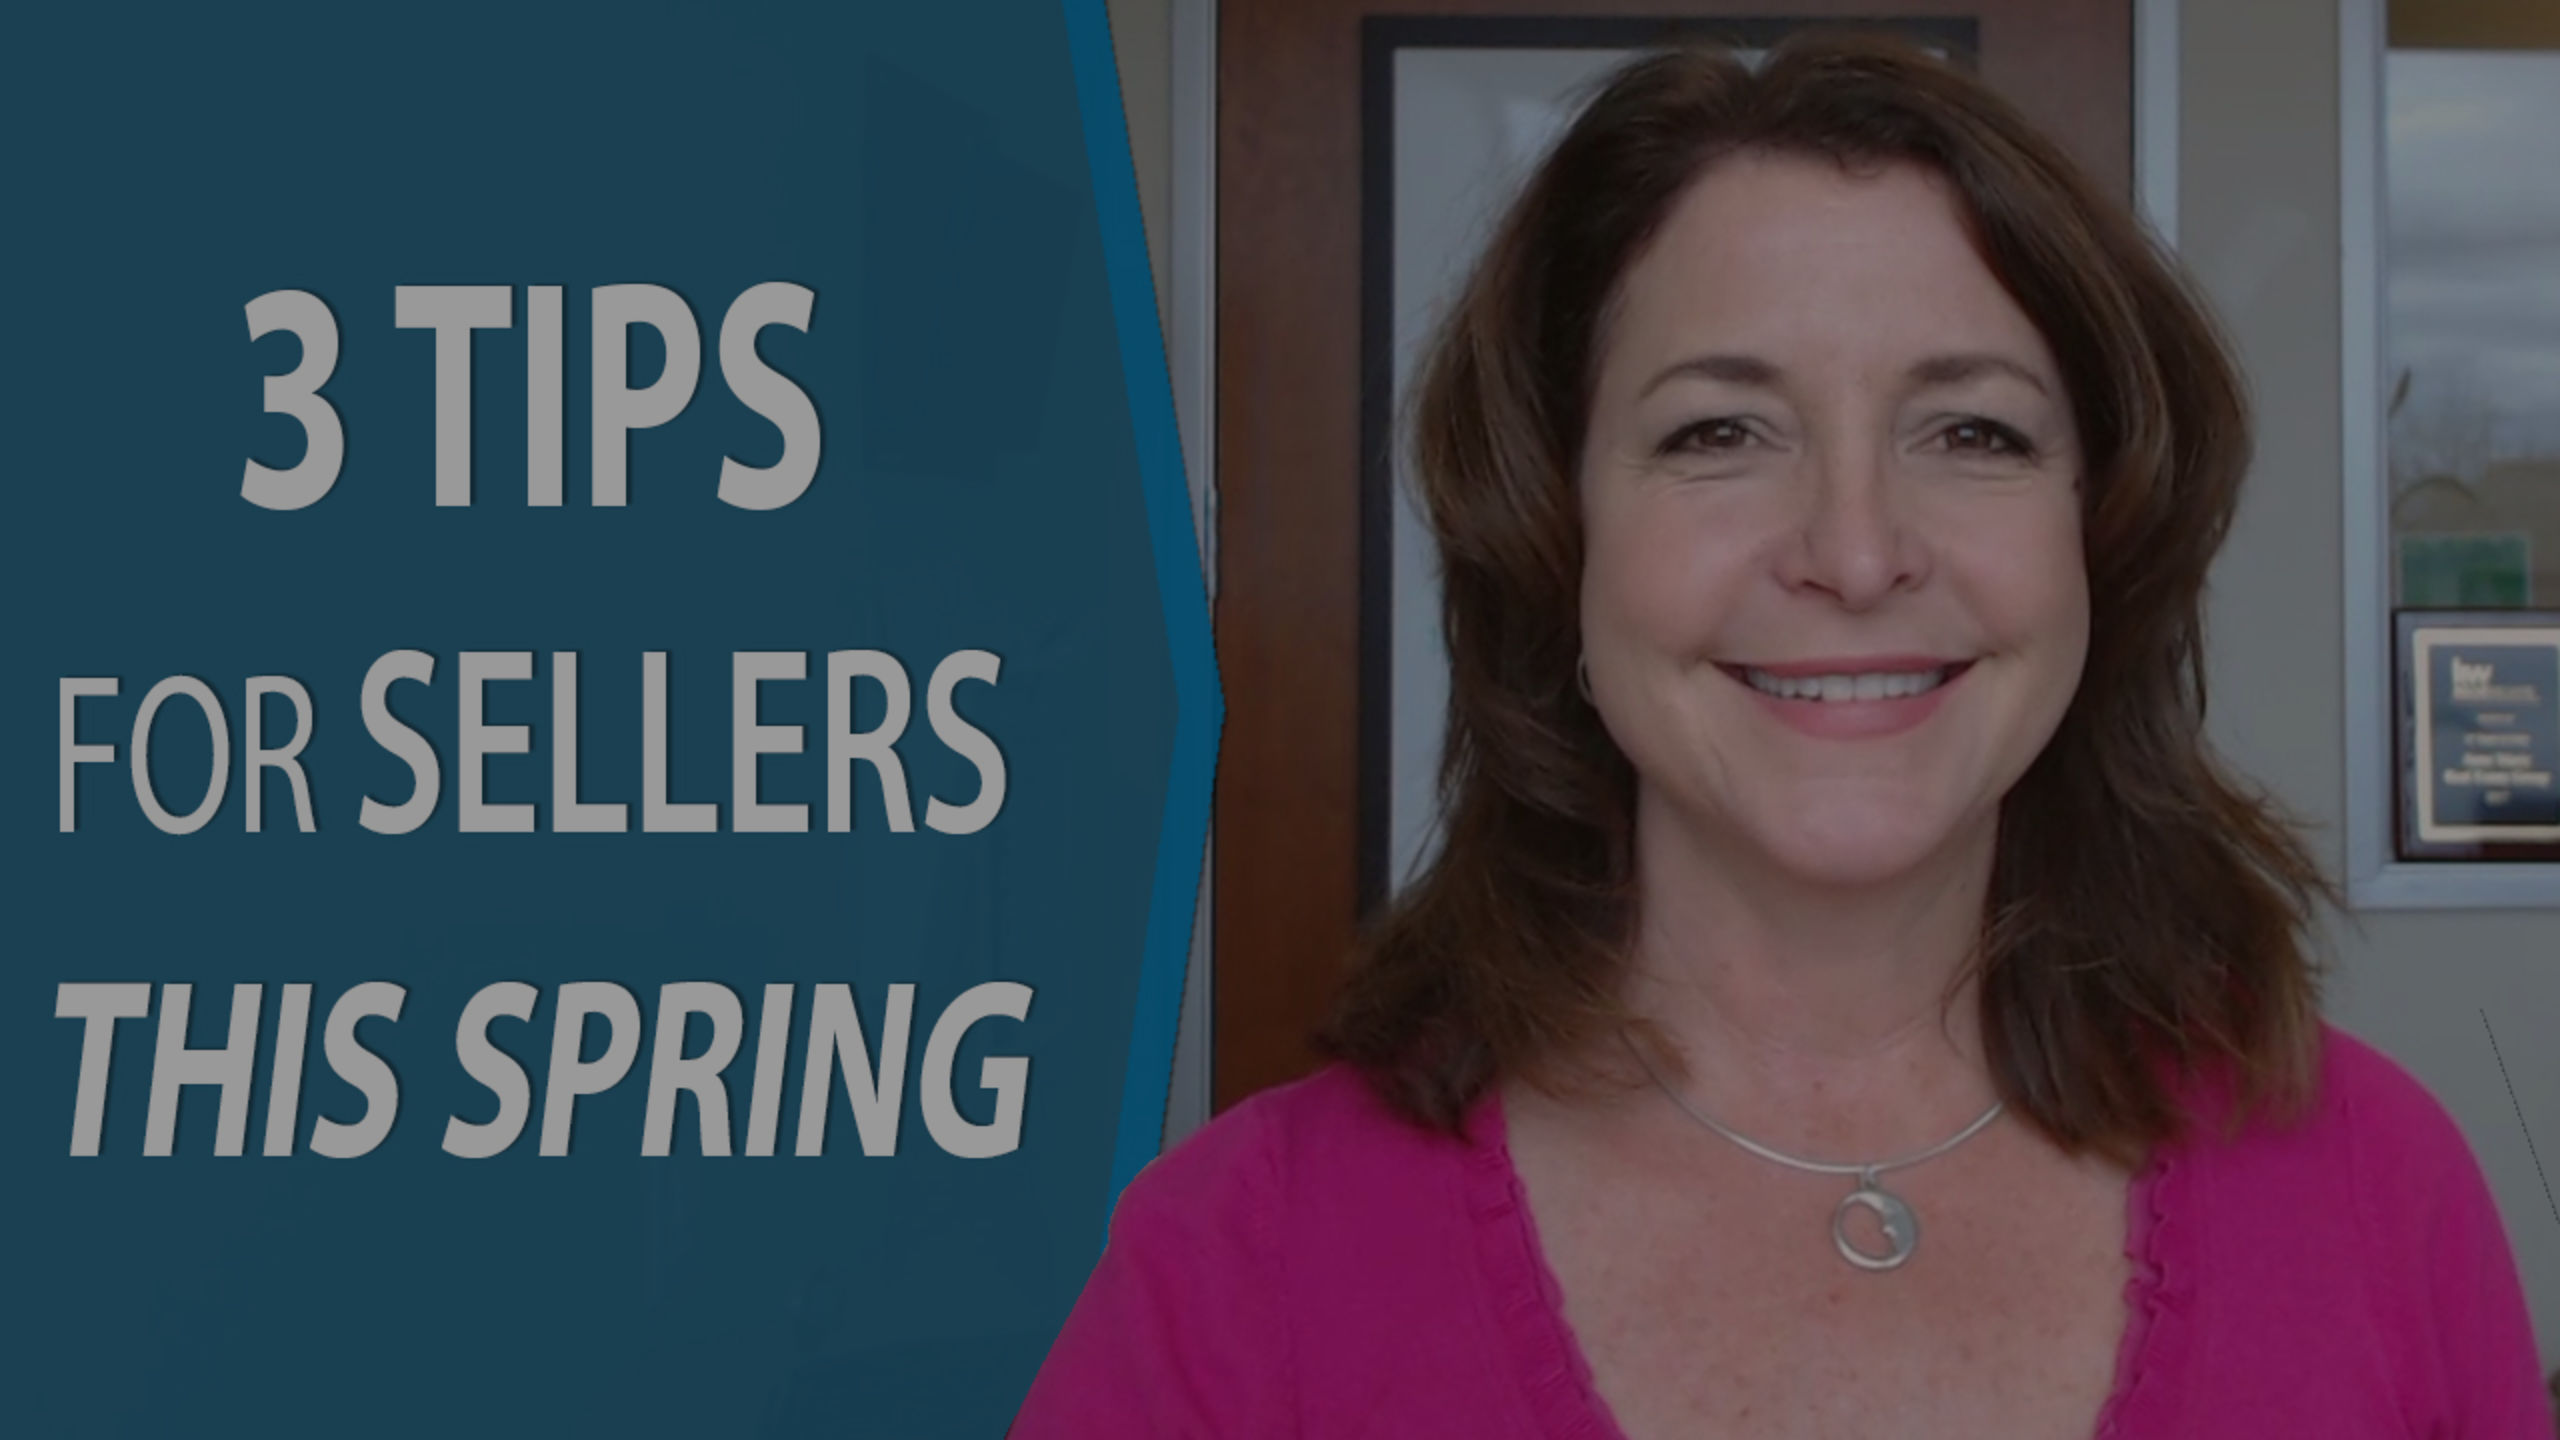 3 TIPS FOR SELLERS THIS SPRING